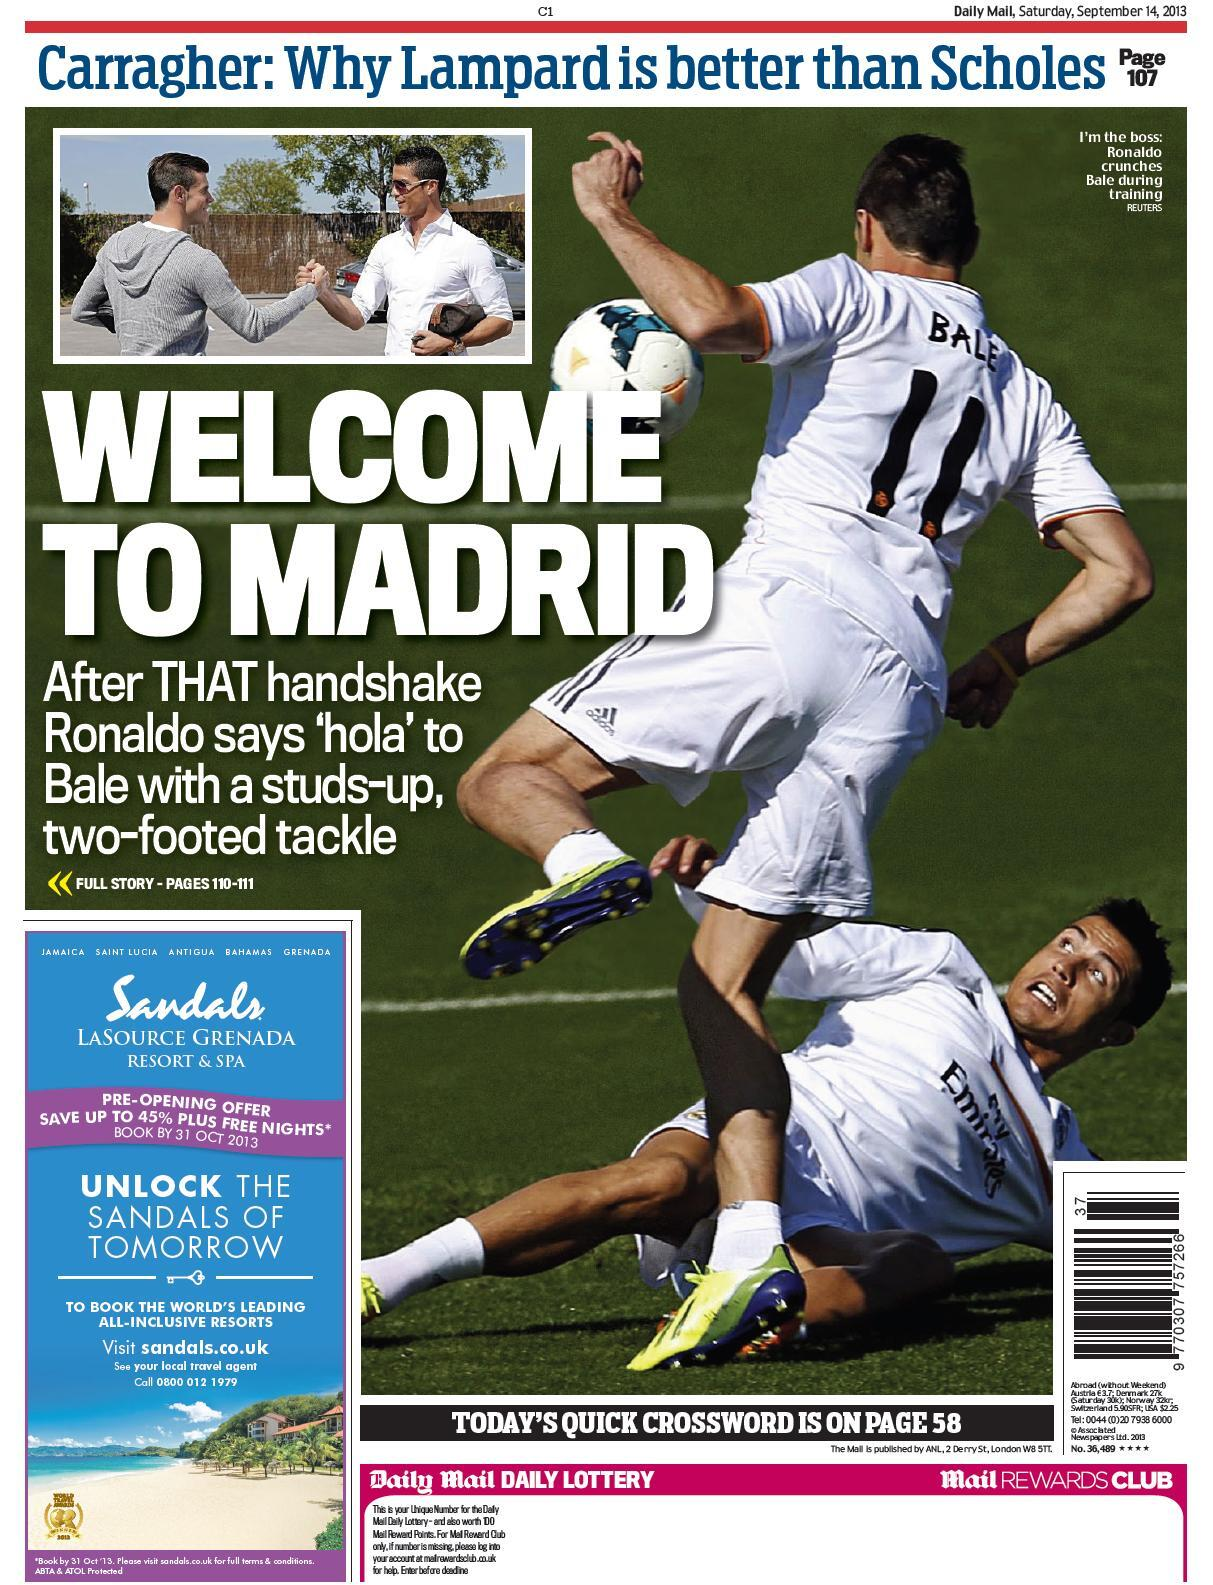 Saturdays Daily Mail: Picture of Bale/Ronaldo tackle, Welcome To Madrid